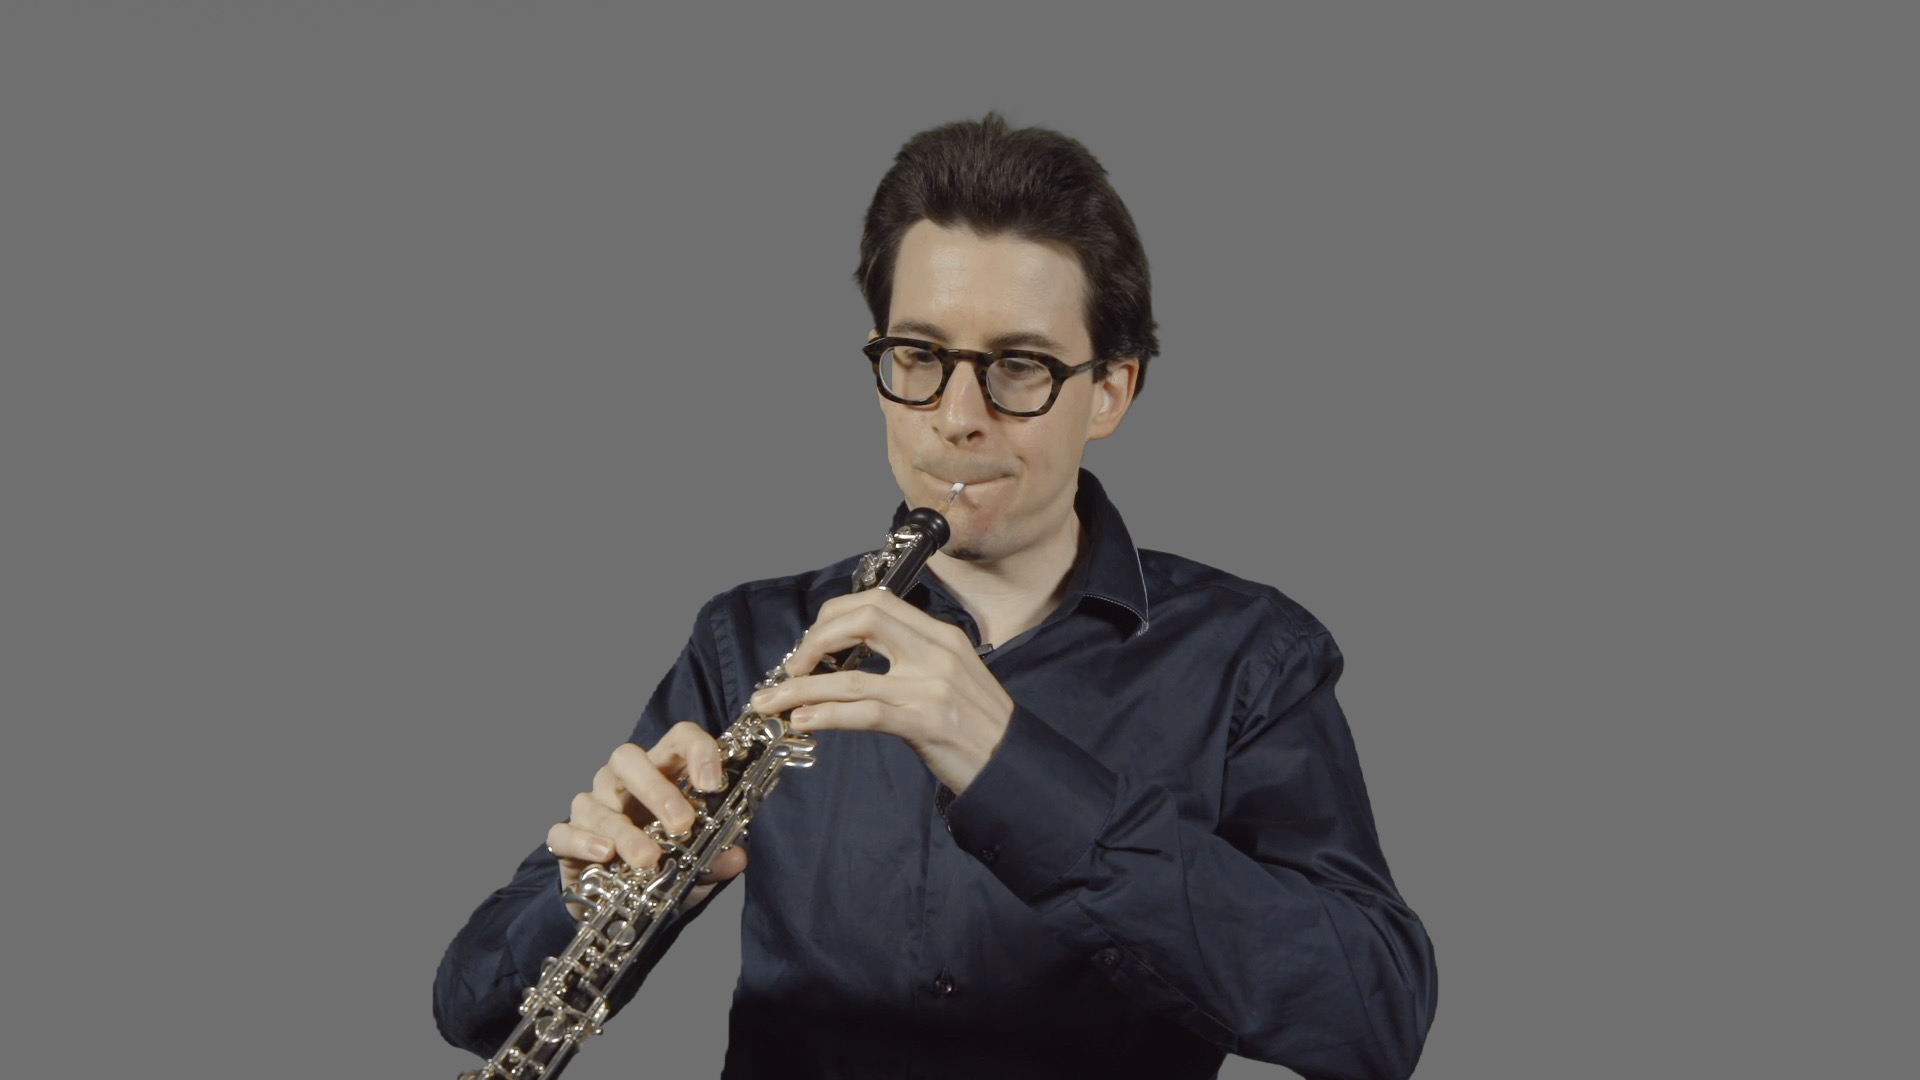 Oboe – 1. Embouchure and finger technique